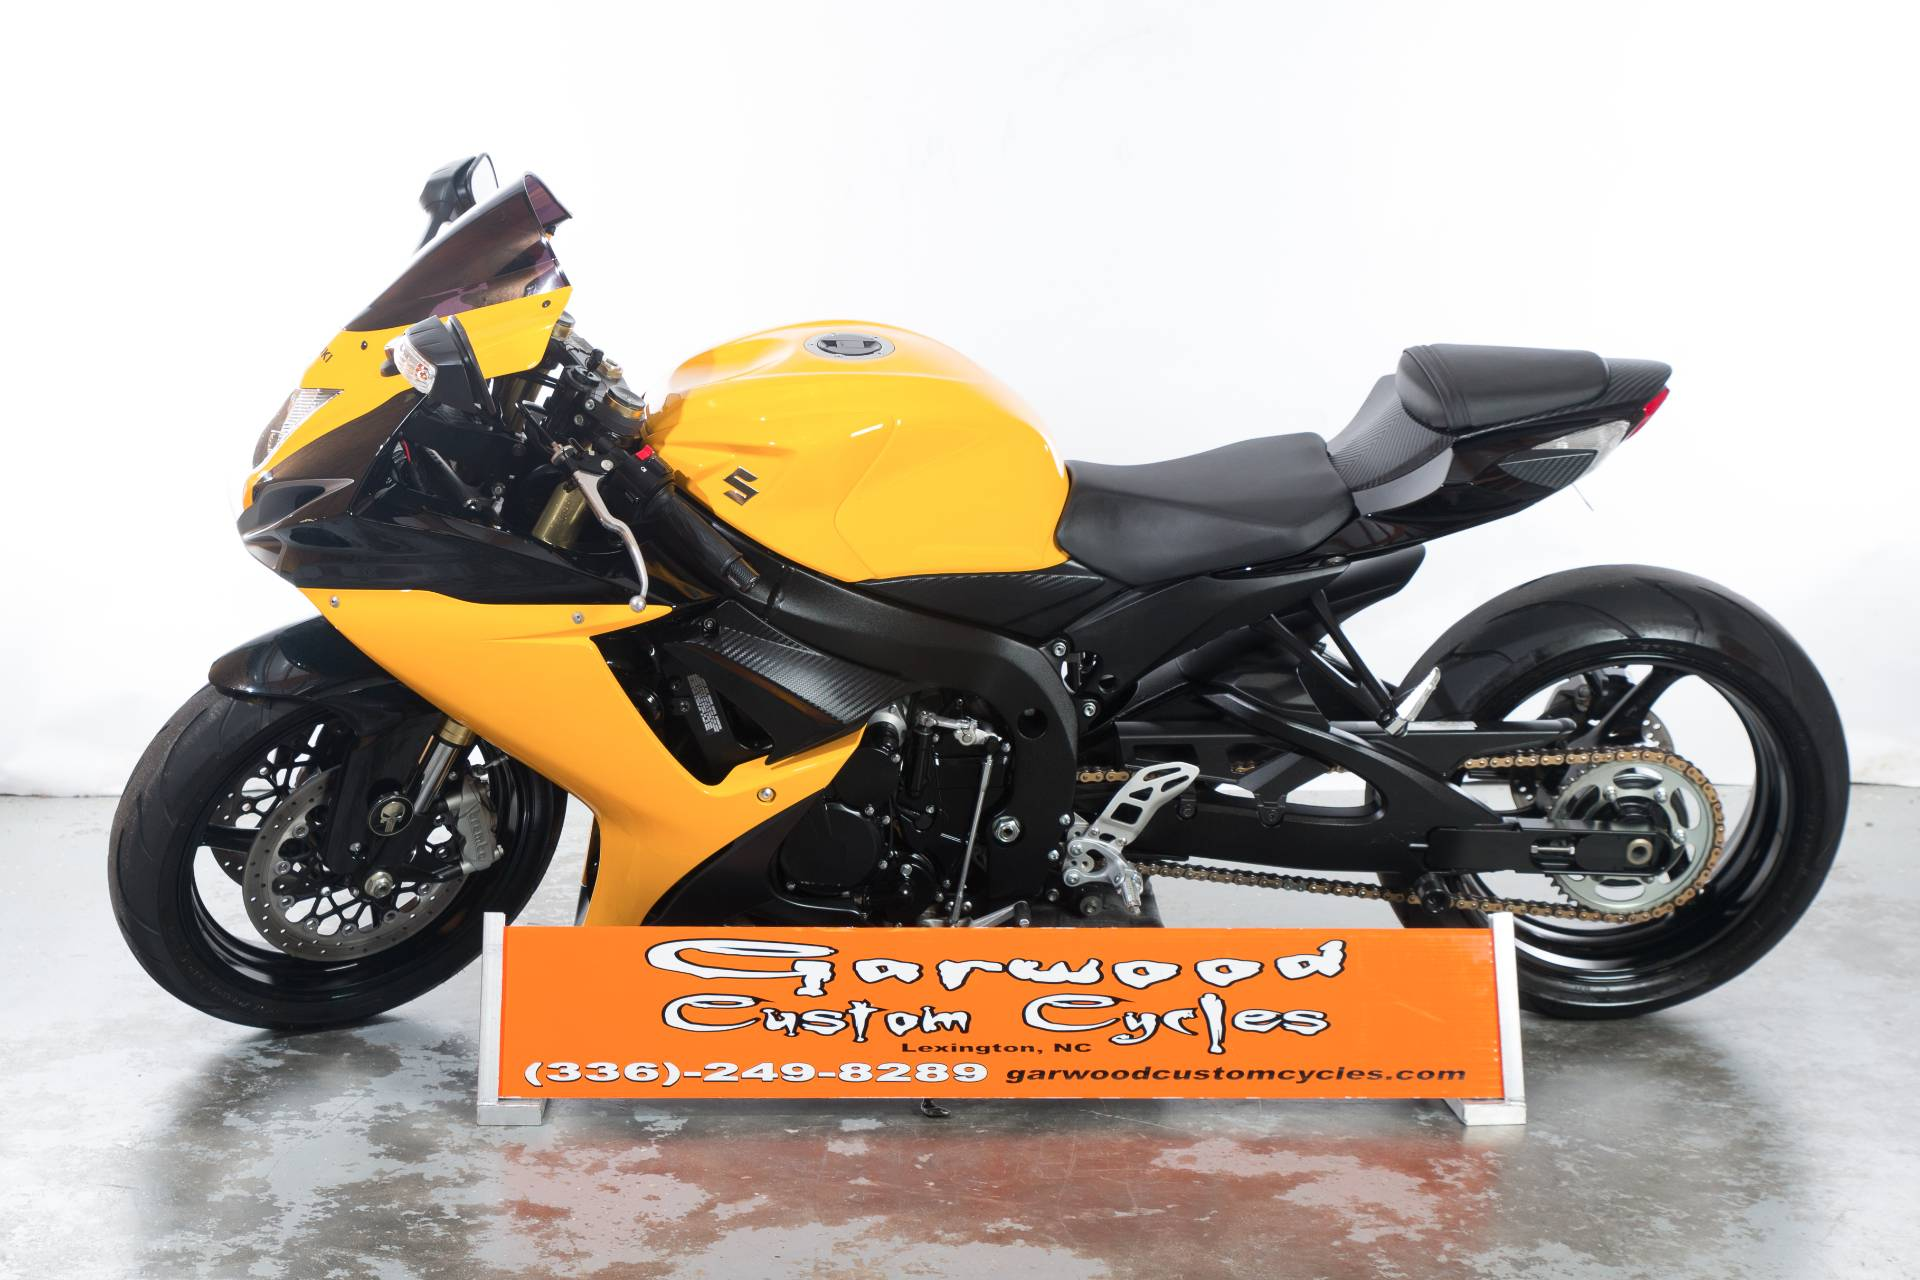 2012 Suzuki GSX-R 750 in Lexington, North Carolina - Photo 5